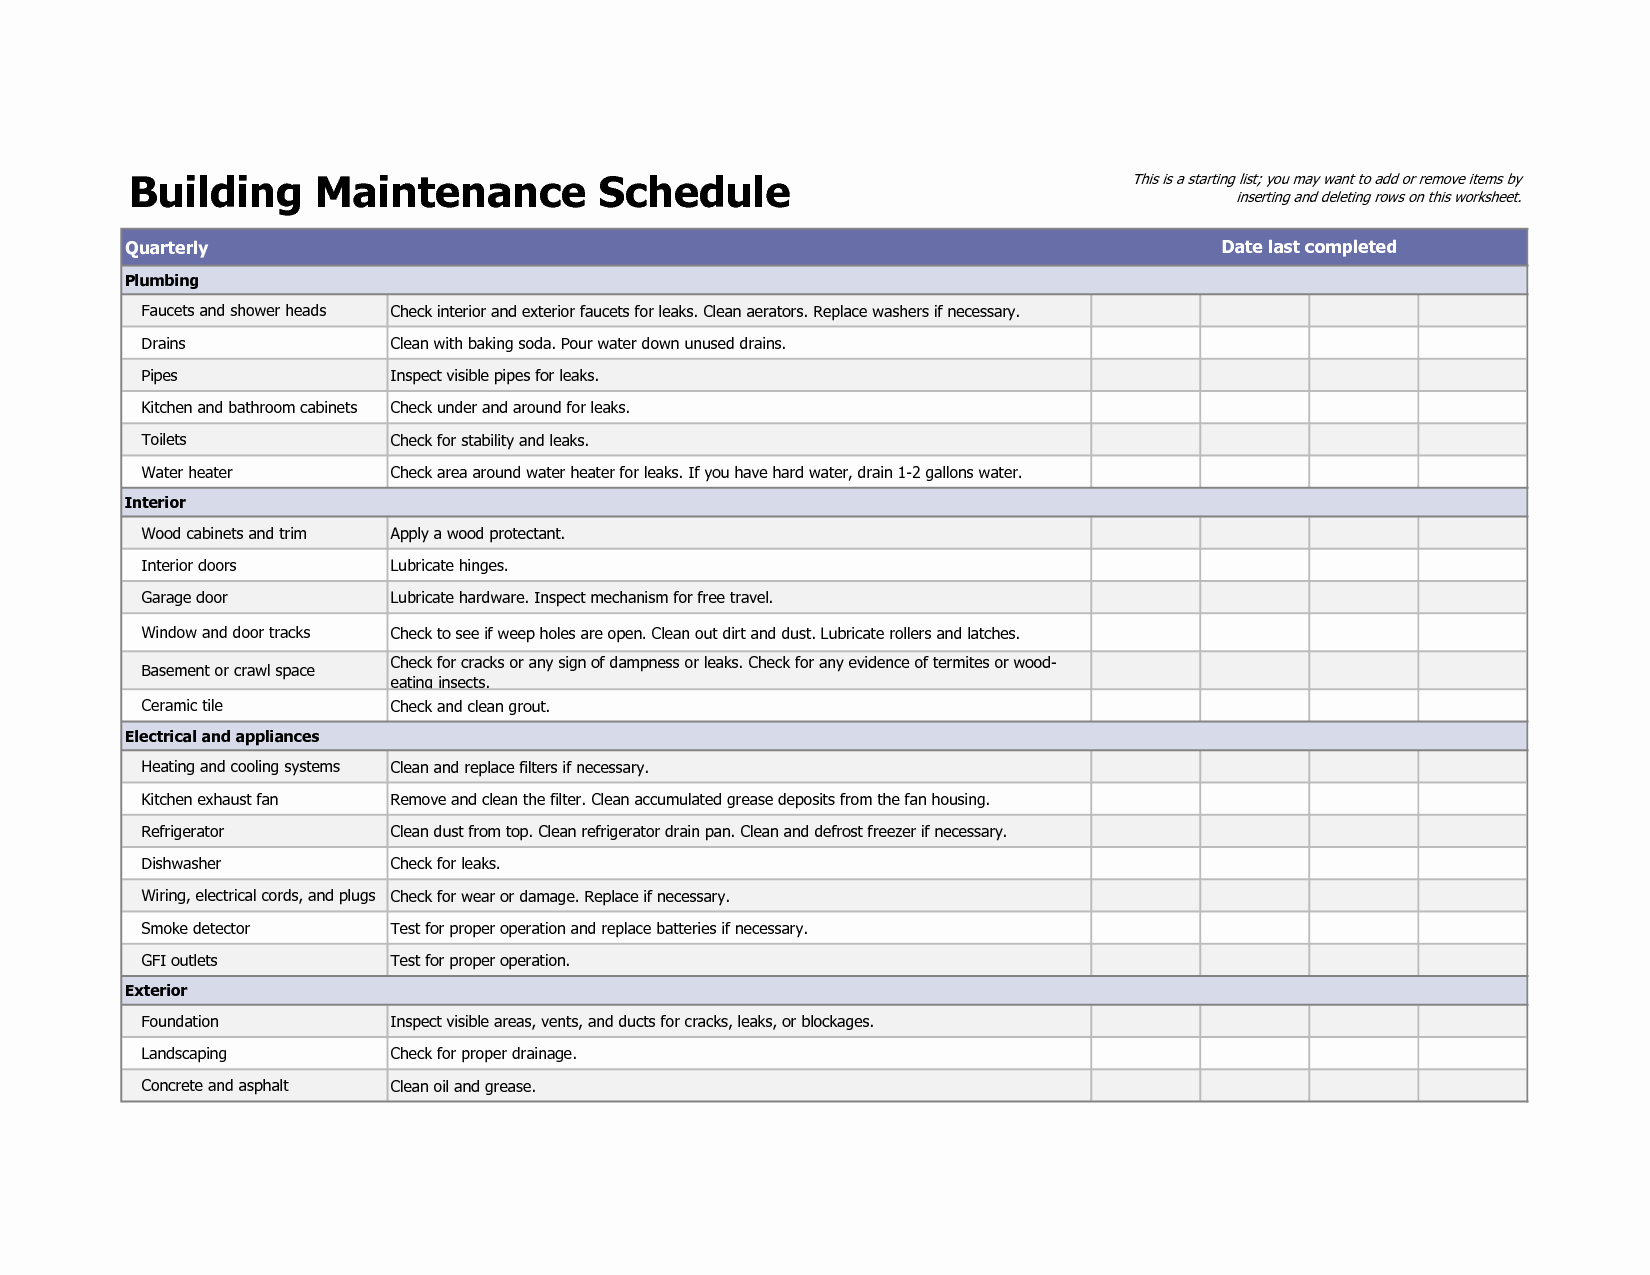 Building Maintenance Schedule Template Fresh Building Maintenance Schedule Excel Template